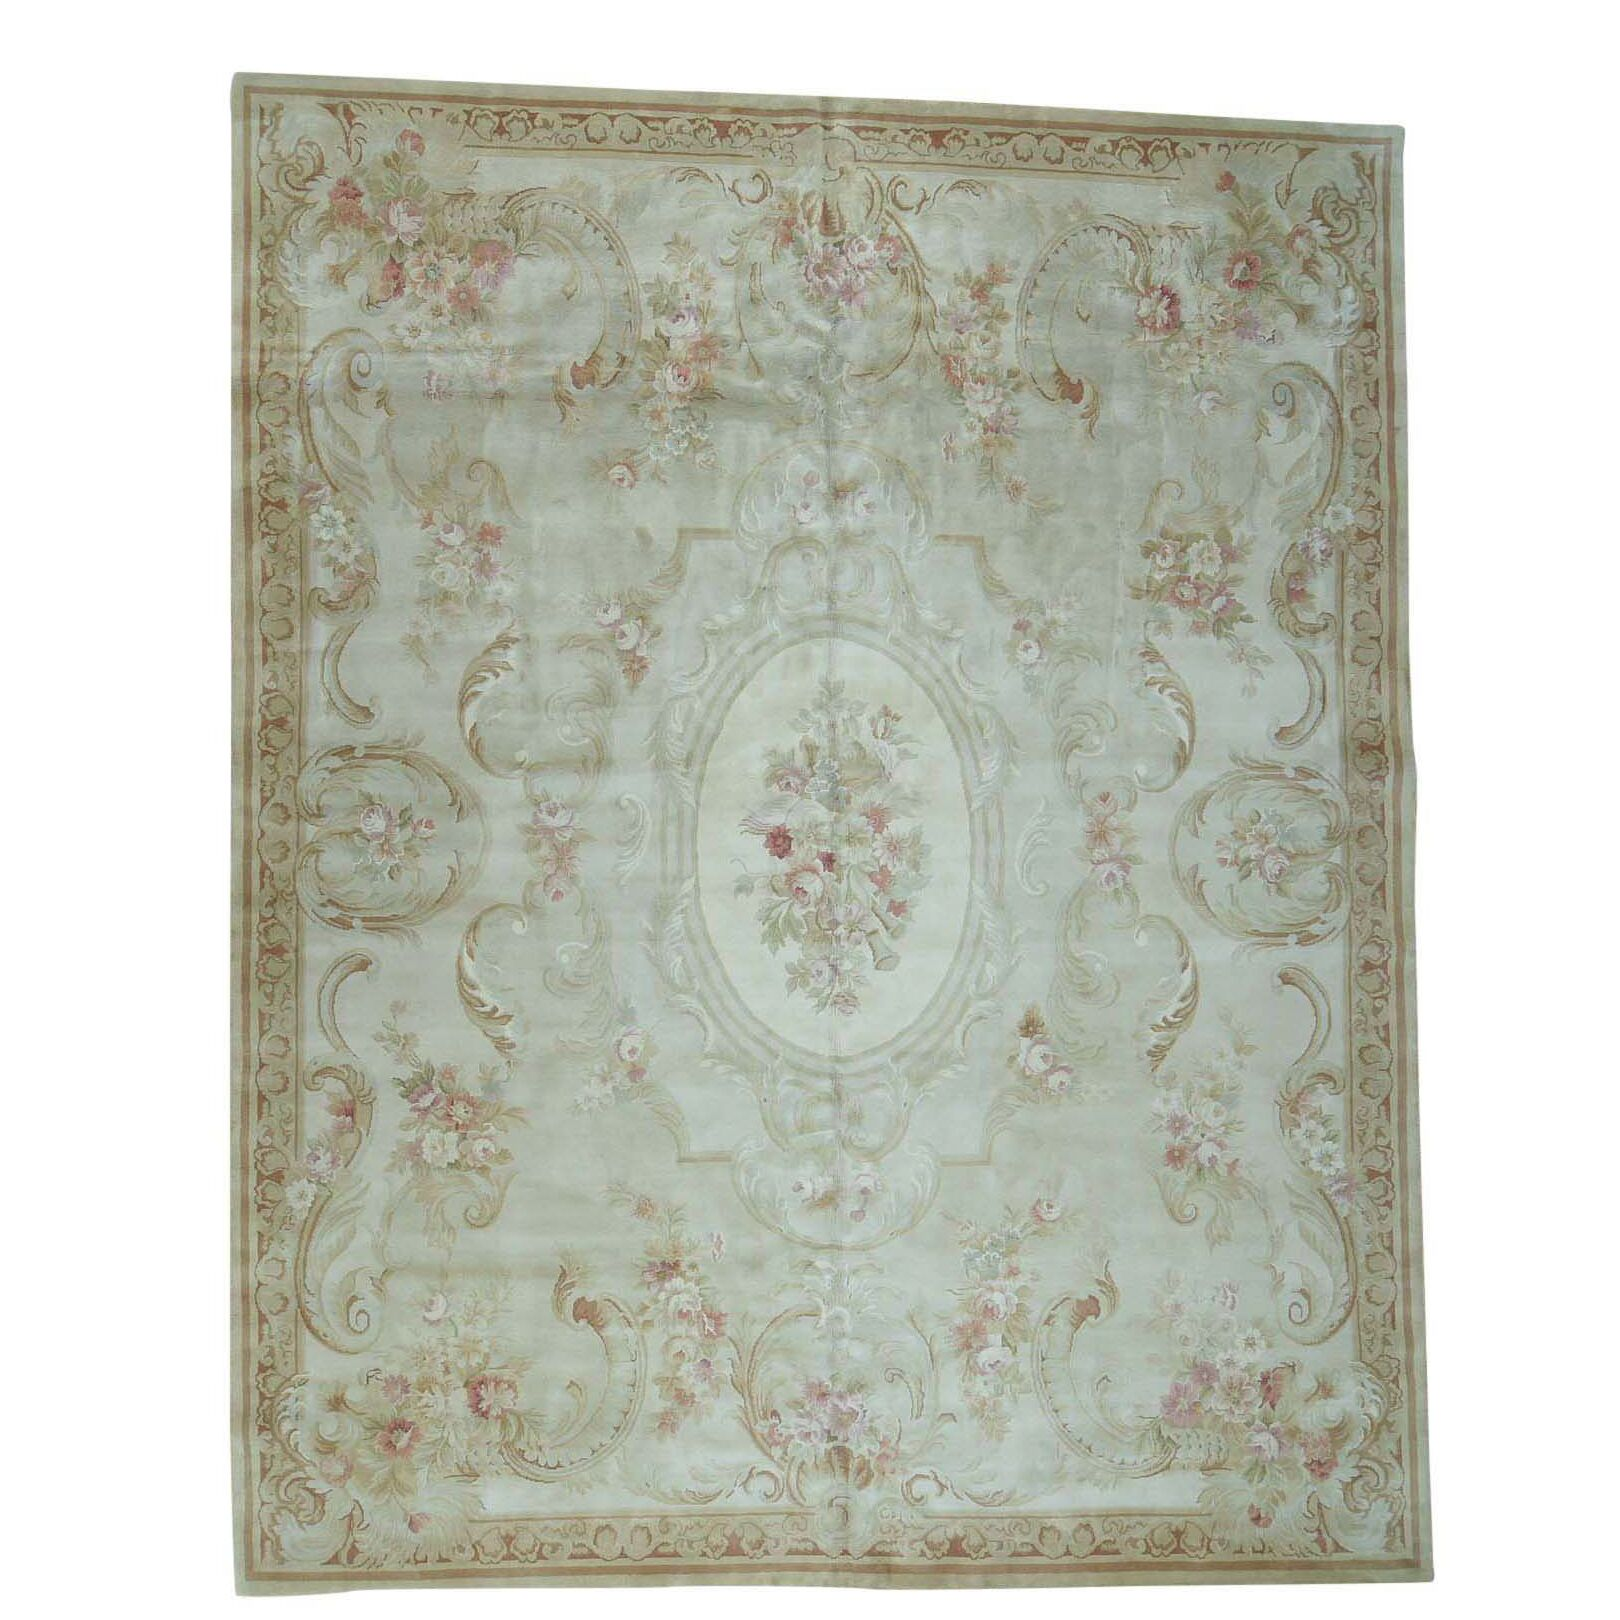 One-of-a-Kind Plush European Savonnerie Charles Hand-Knotted Ivory Area Rug